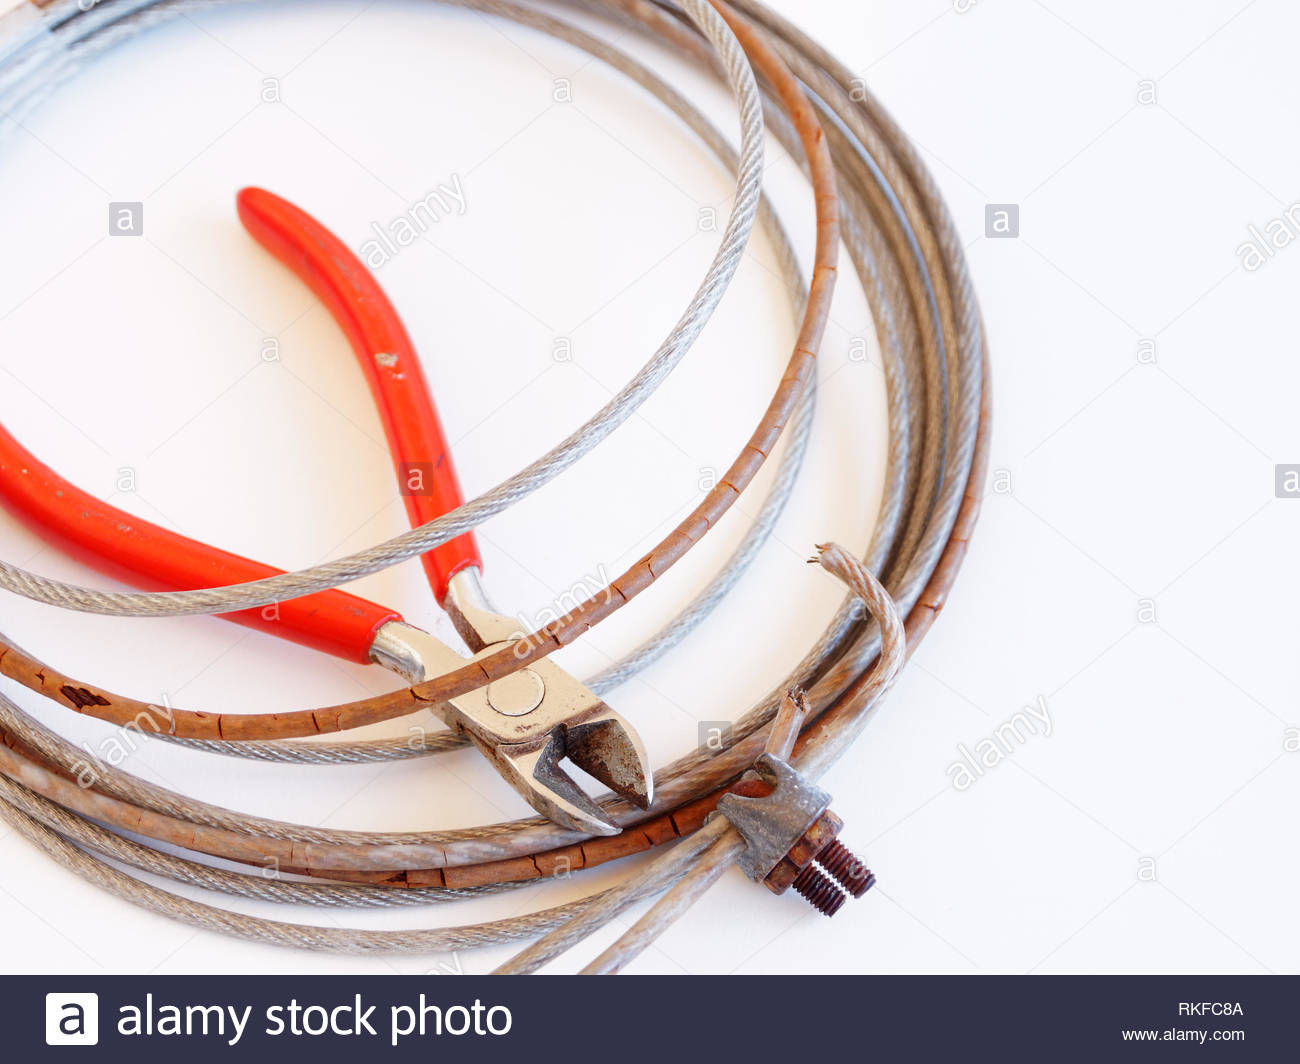 Old worn out plastic covered steel wire with wire cutters on white with copy space - Stock Image